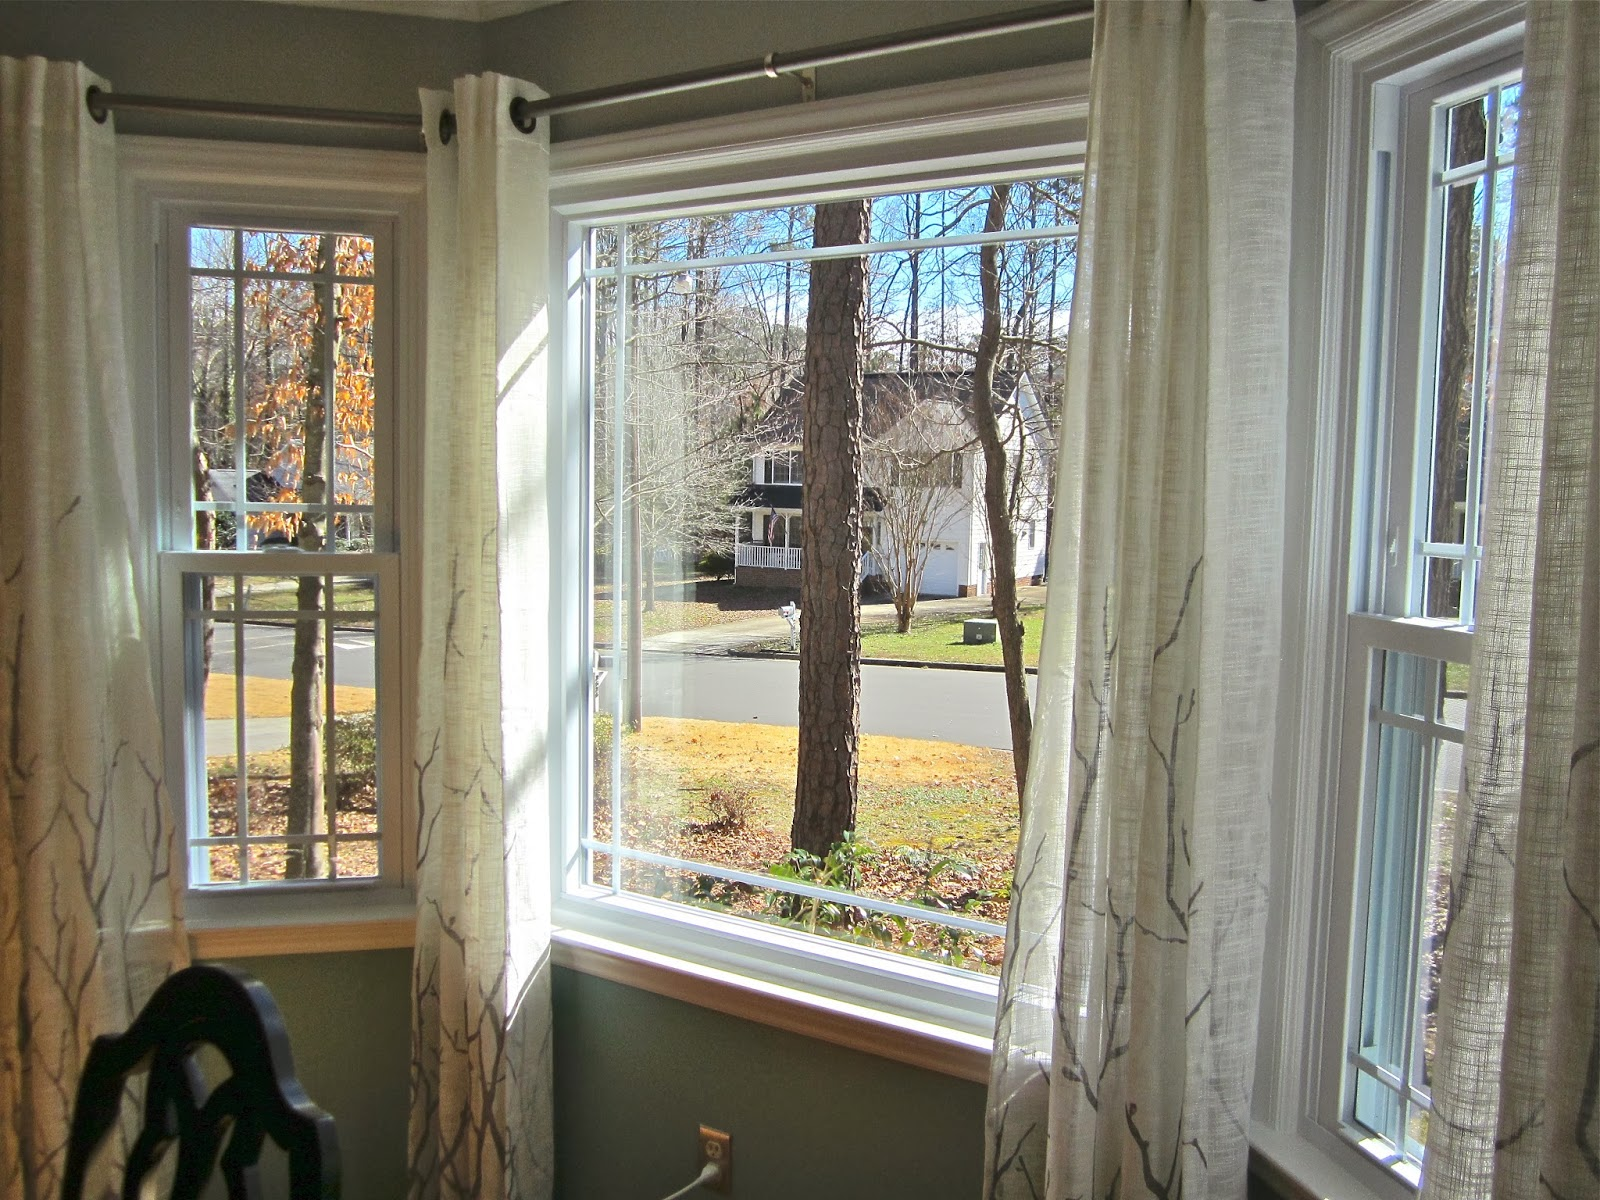 The Amberican Dream Pvc Pipes In The Bay Window